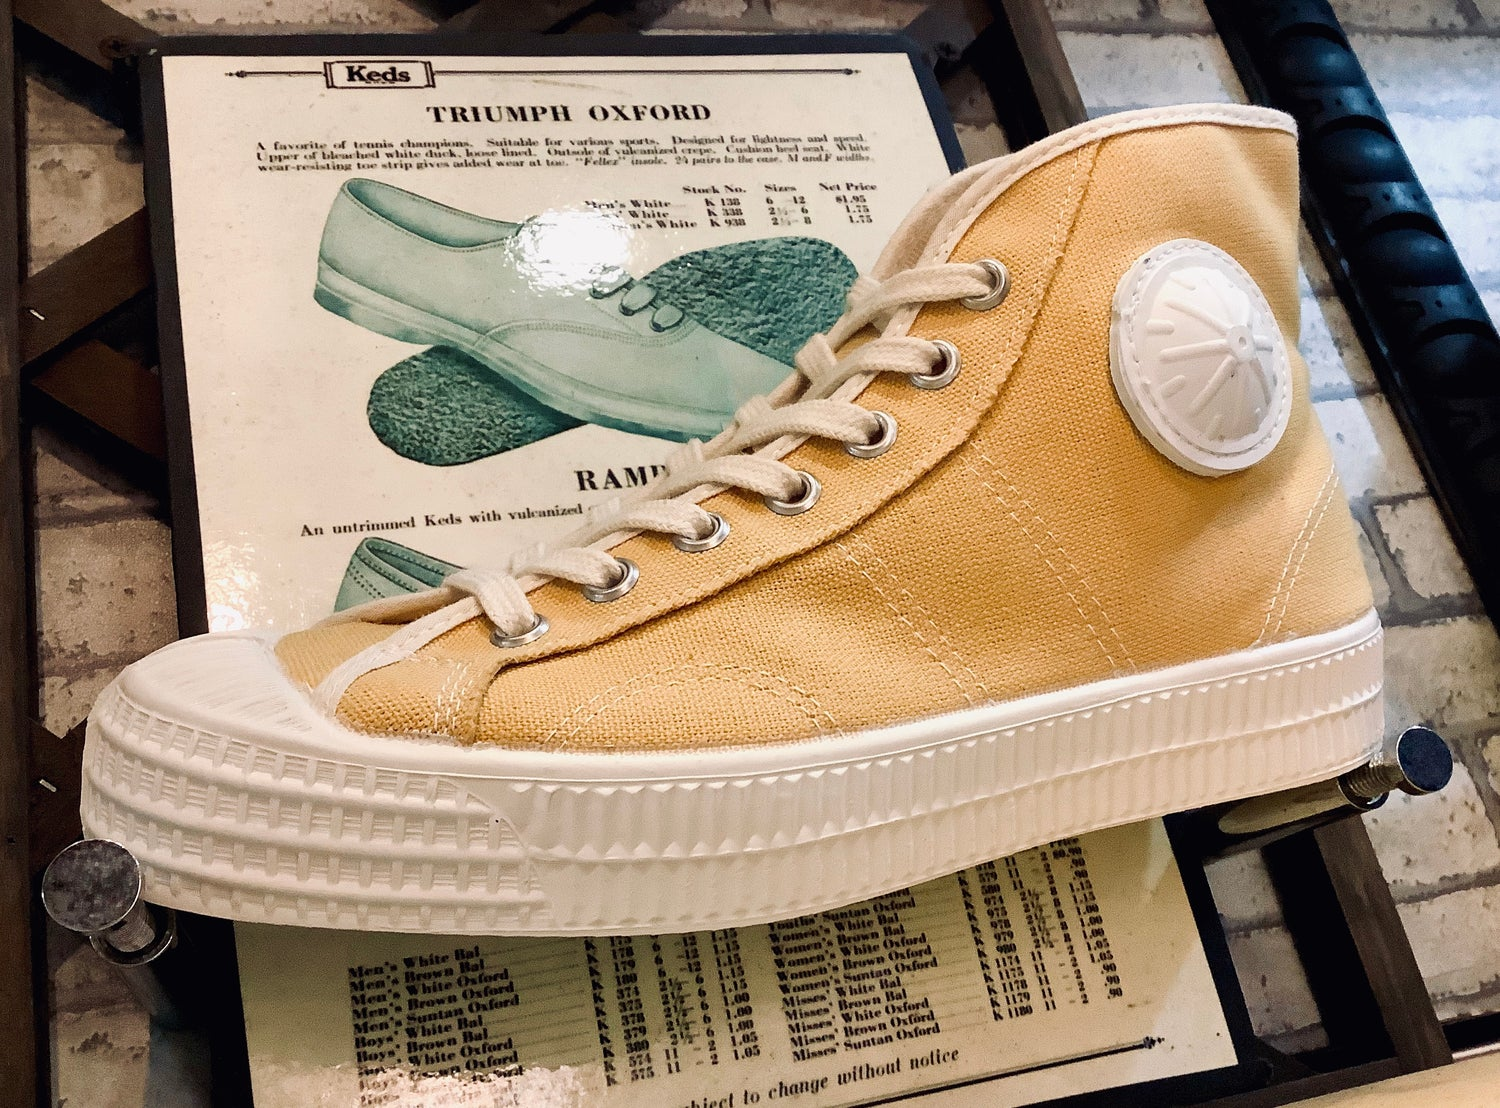 Image of VEGANCRAFT vintage style hi top sneaker shoes made in Slovakia